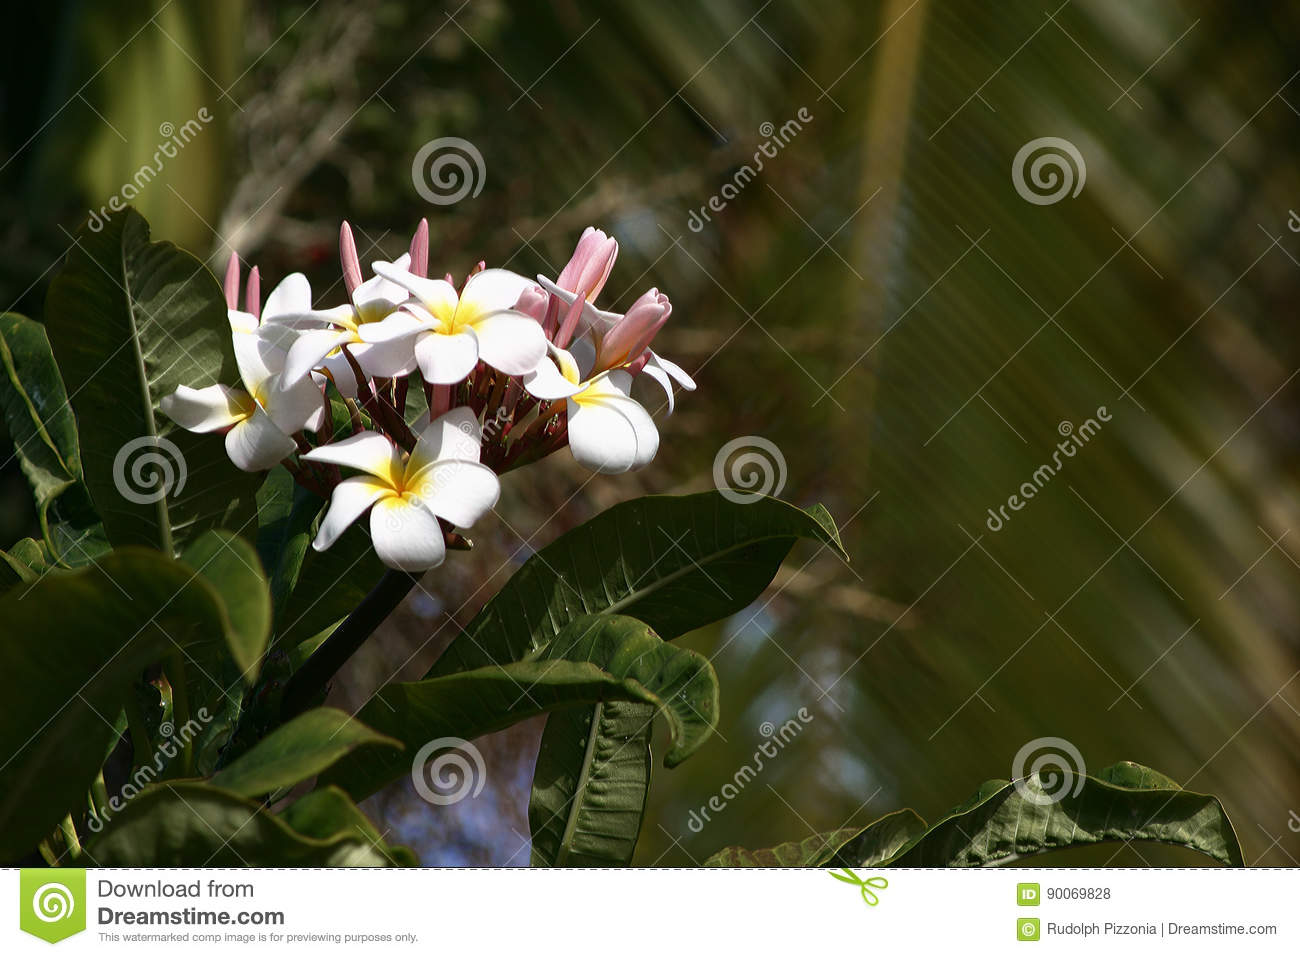 Hawaii plumeria flowers used in hawaiian leis stock photo image of hawaii plumeria flowers used in hawaiian leis izmirmasajfo Choice Image